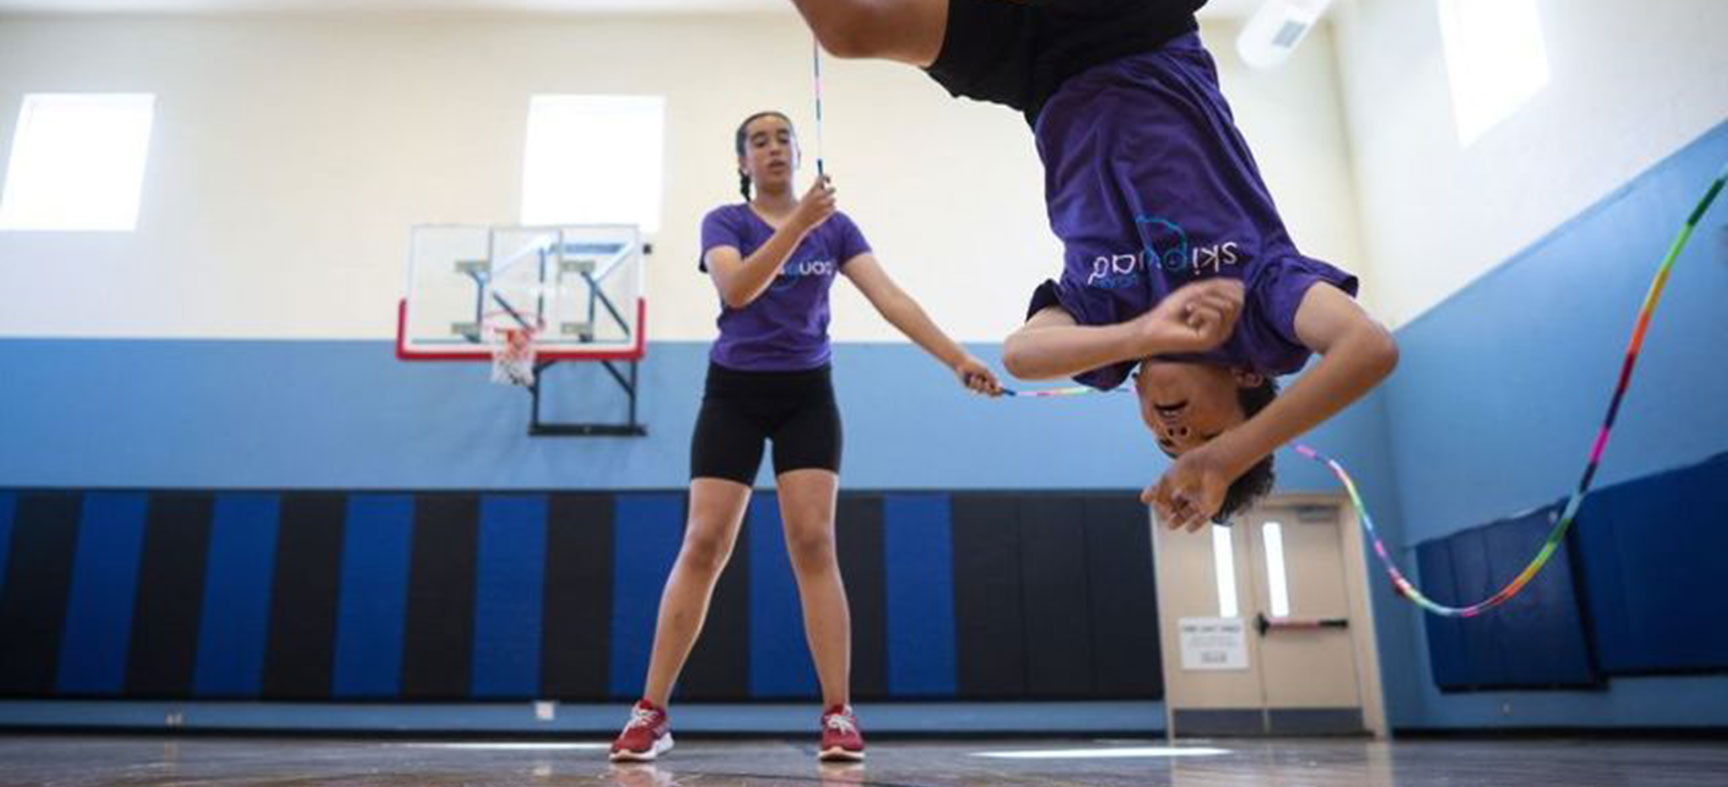 From the playground to the podium: Calgary jump ropers have Olympic dreams